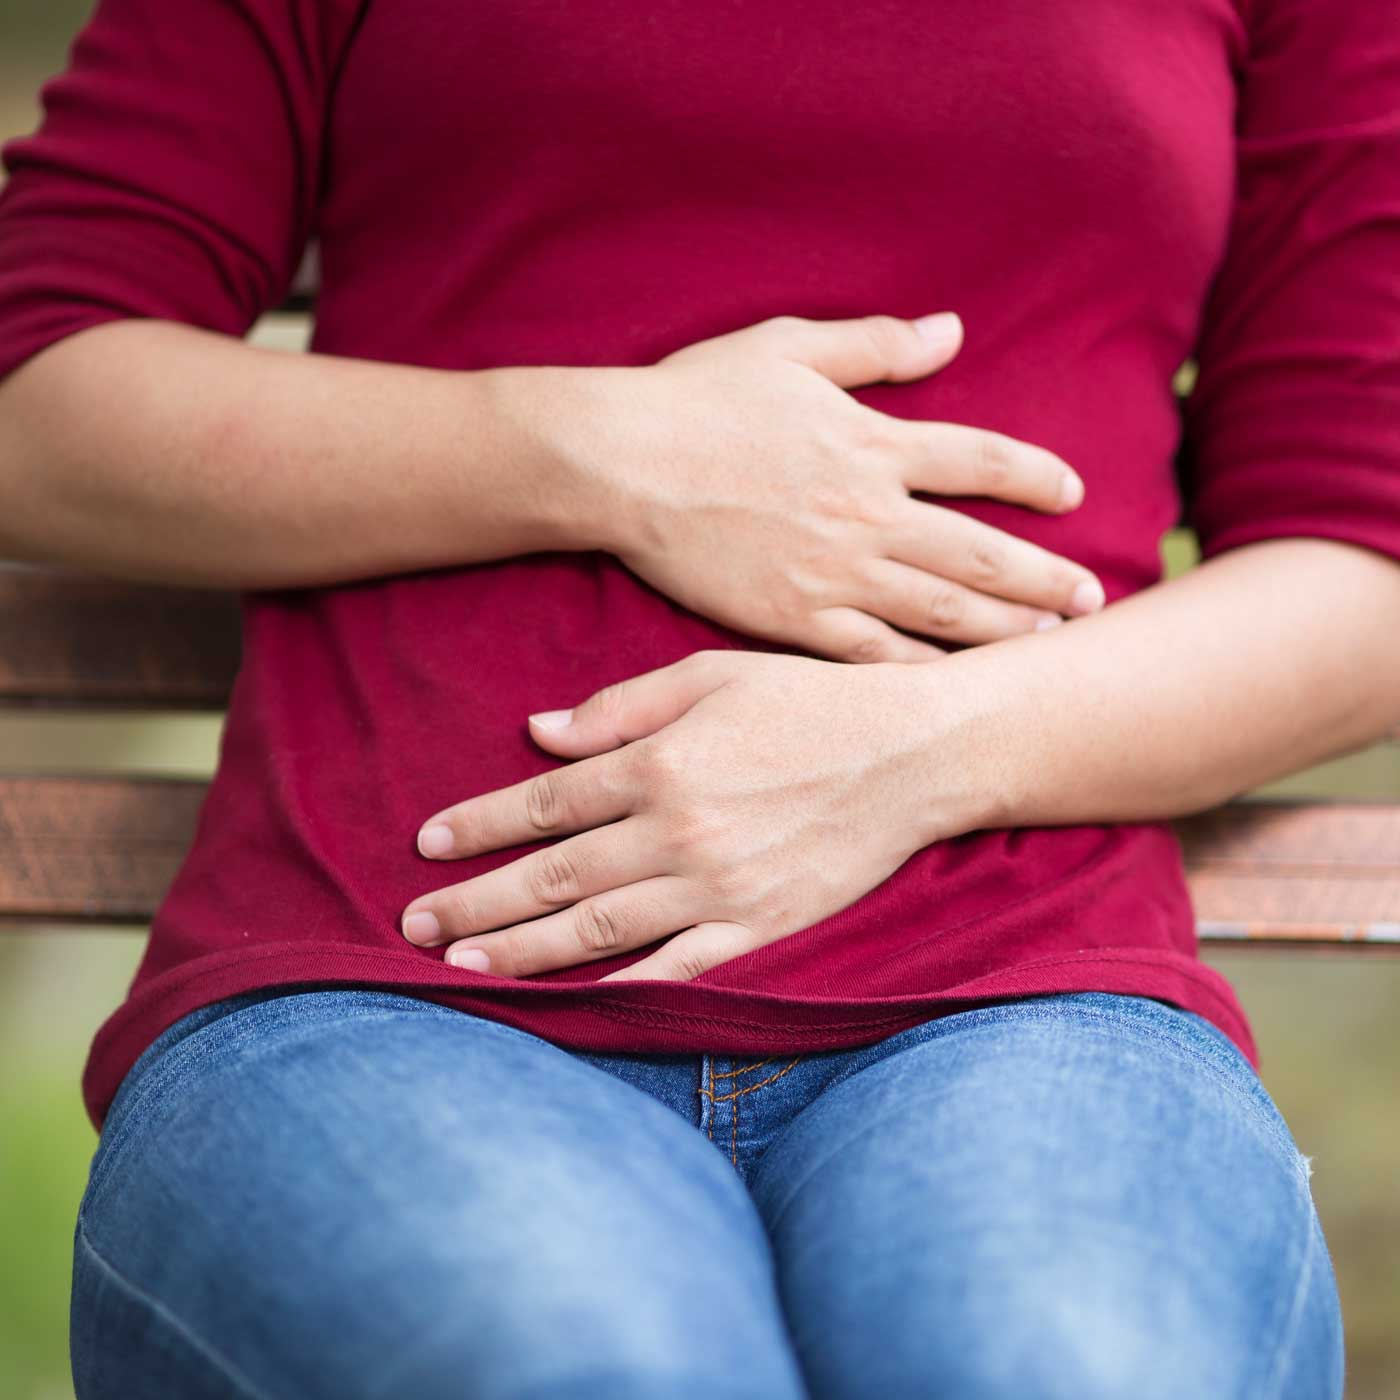 Essential Chiropractic and Healthcare Clinic - Naturophatic Conditions Treatment For Stomach and Digestive Disorders